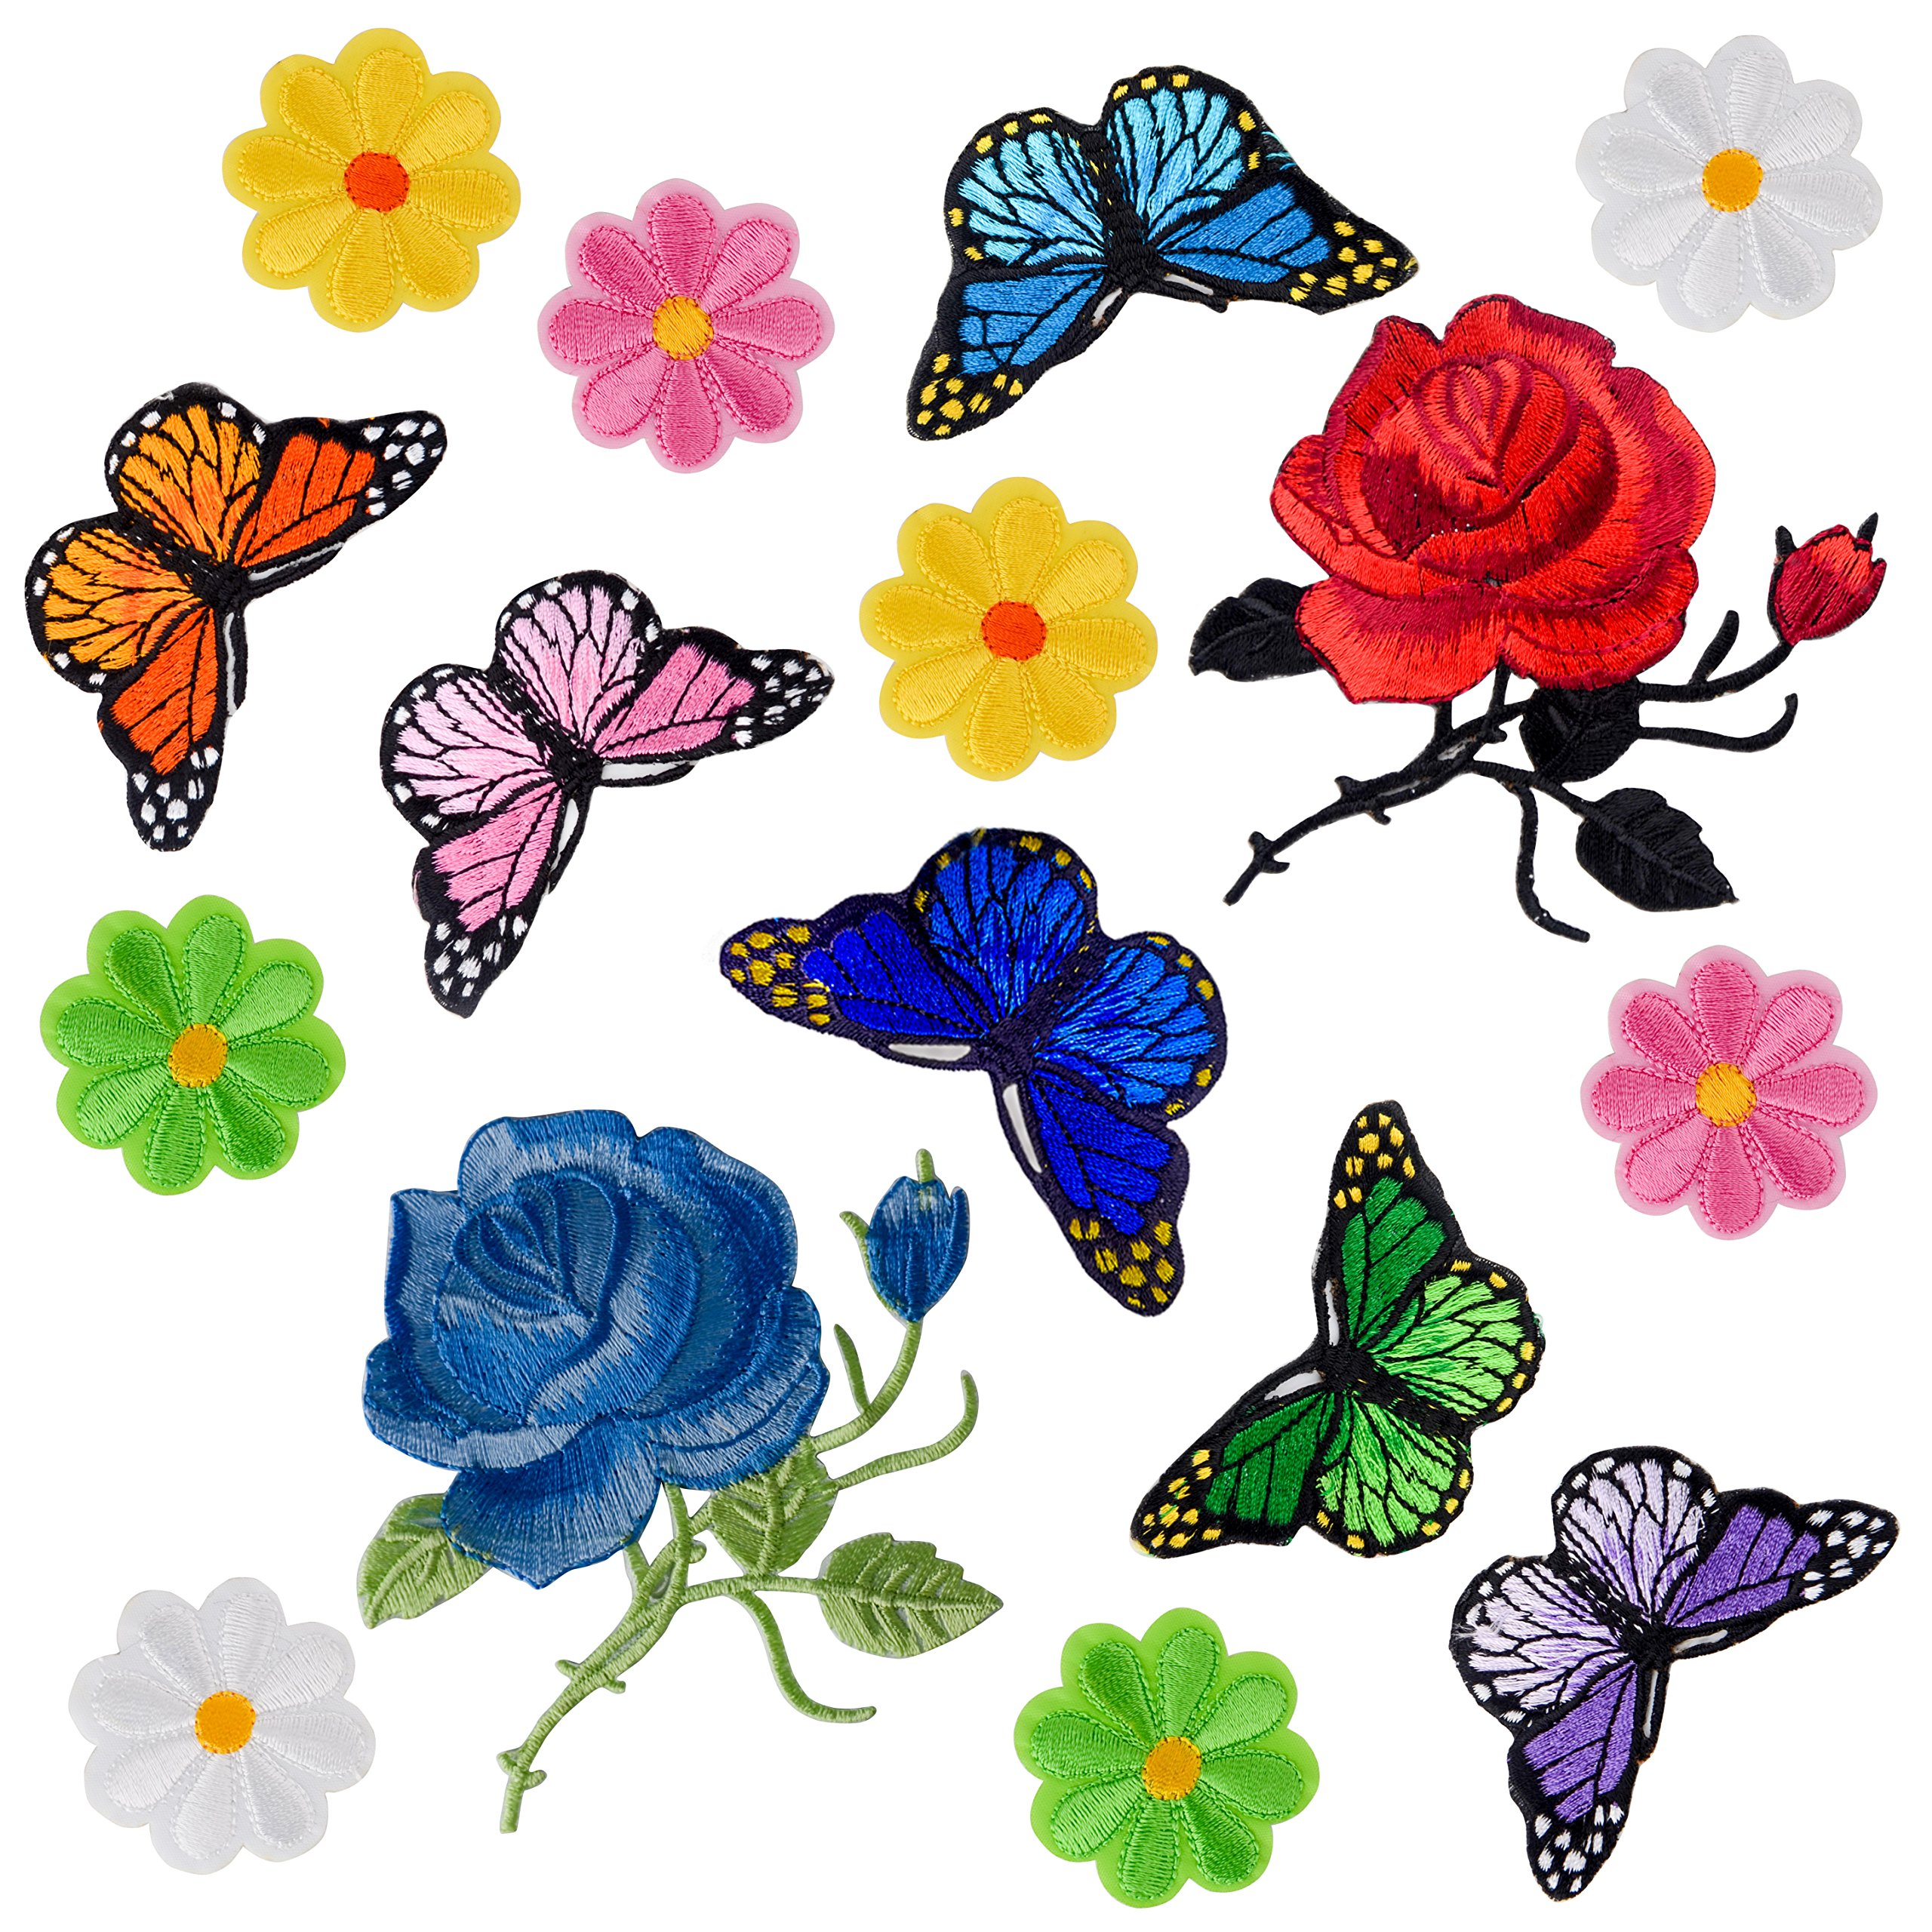 14 Pieces Embroidery Rose Flower Butterfly Iron on Applique Patches Sew on Butterfly Patch Rose Applique Patches for Jacket Jeans Clothes Hats Shoes Bags